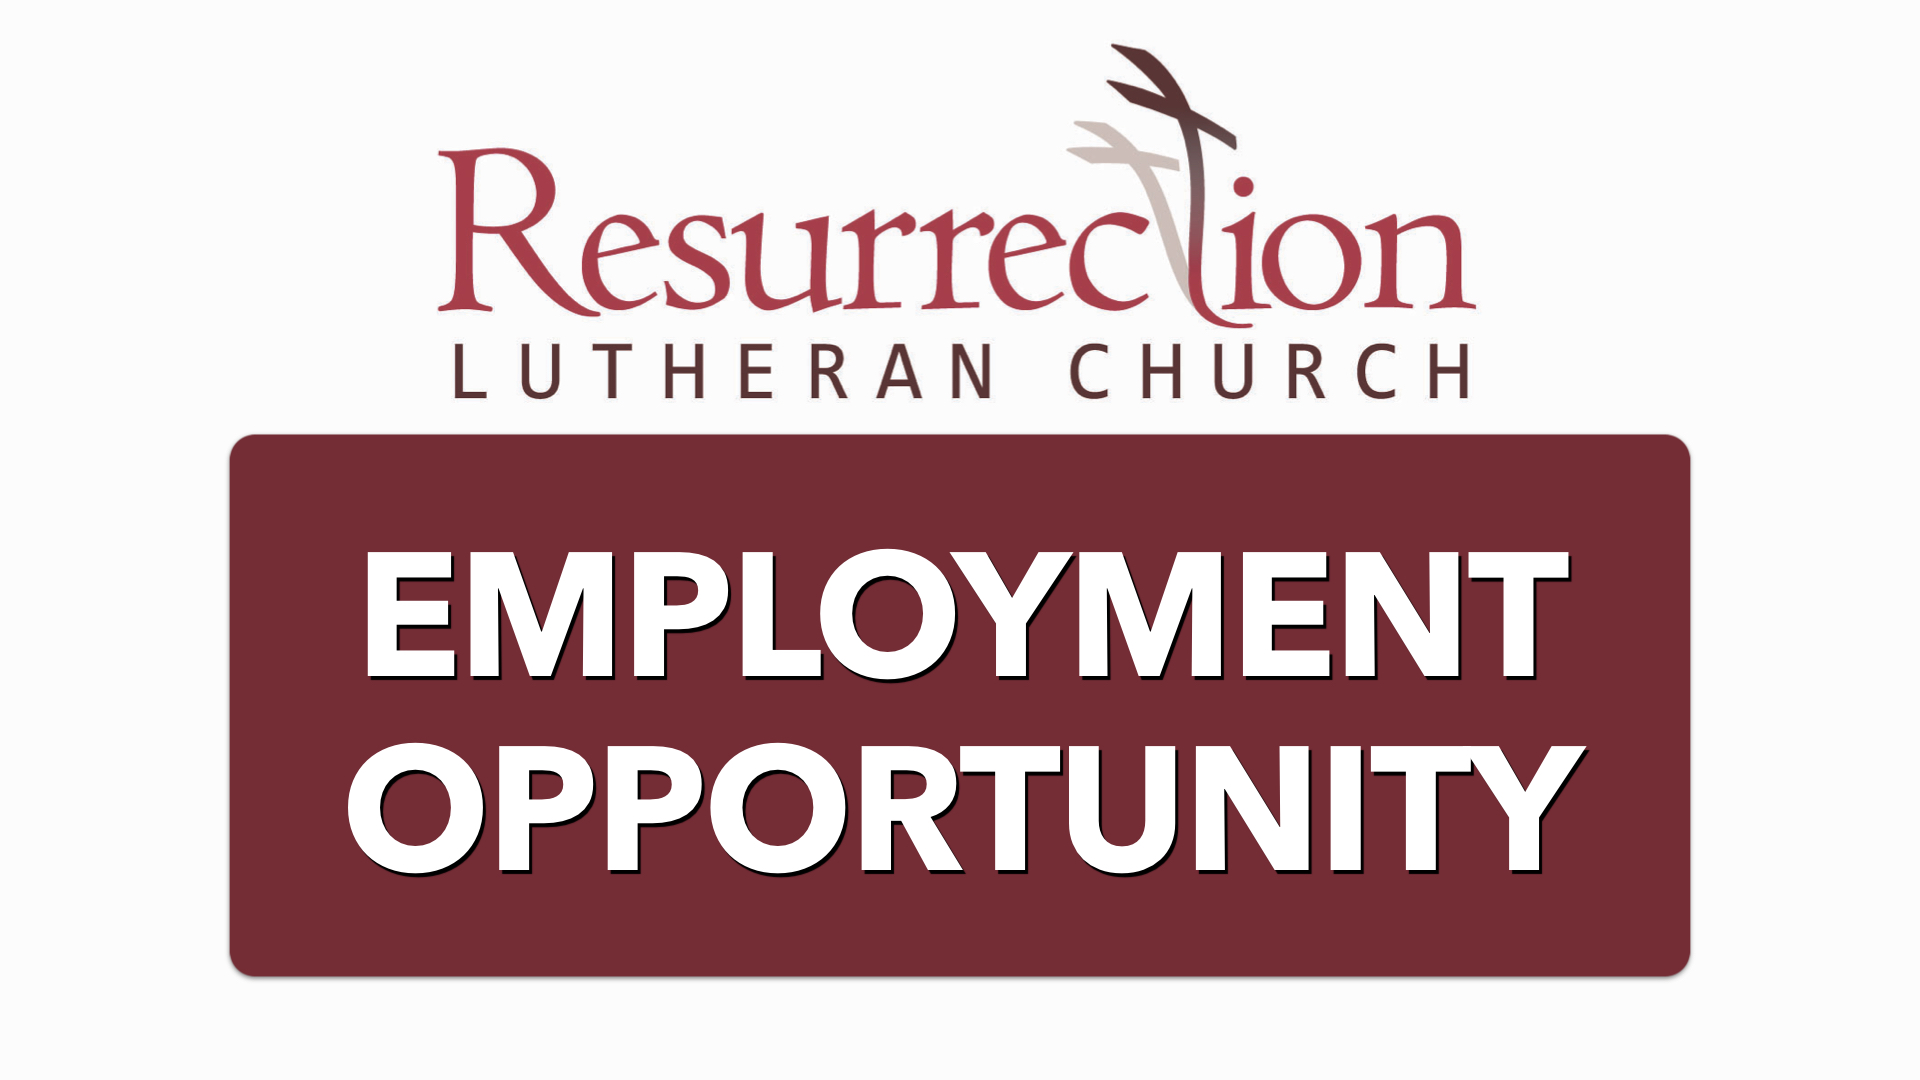 Resurrection Lutheran Church Employment Opportunity